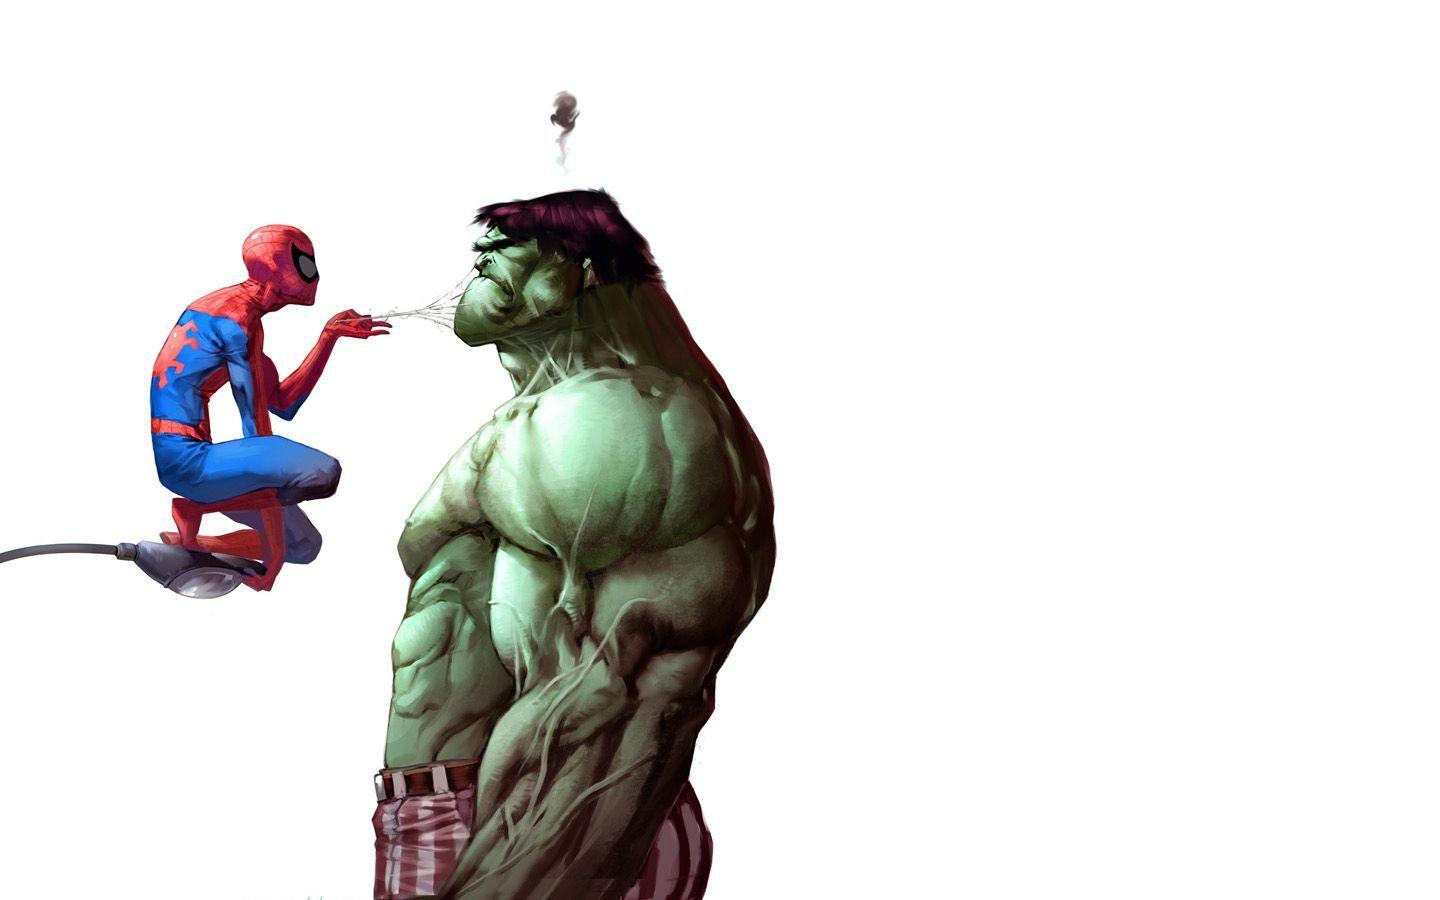 Hulk Computer Wallpapers, Desktop Backgrounds 1440x900 Id: 59421